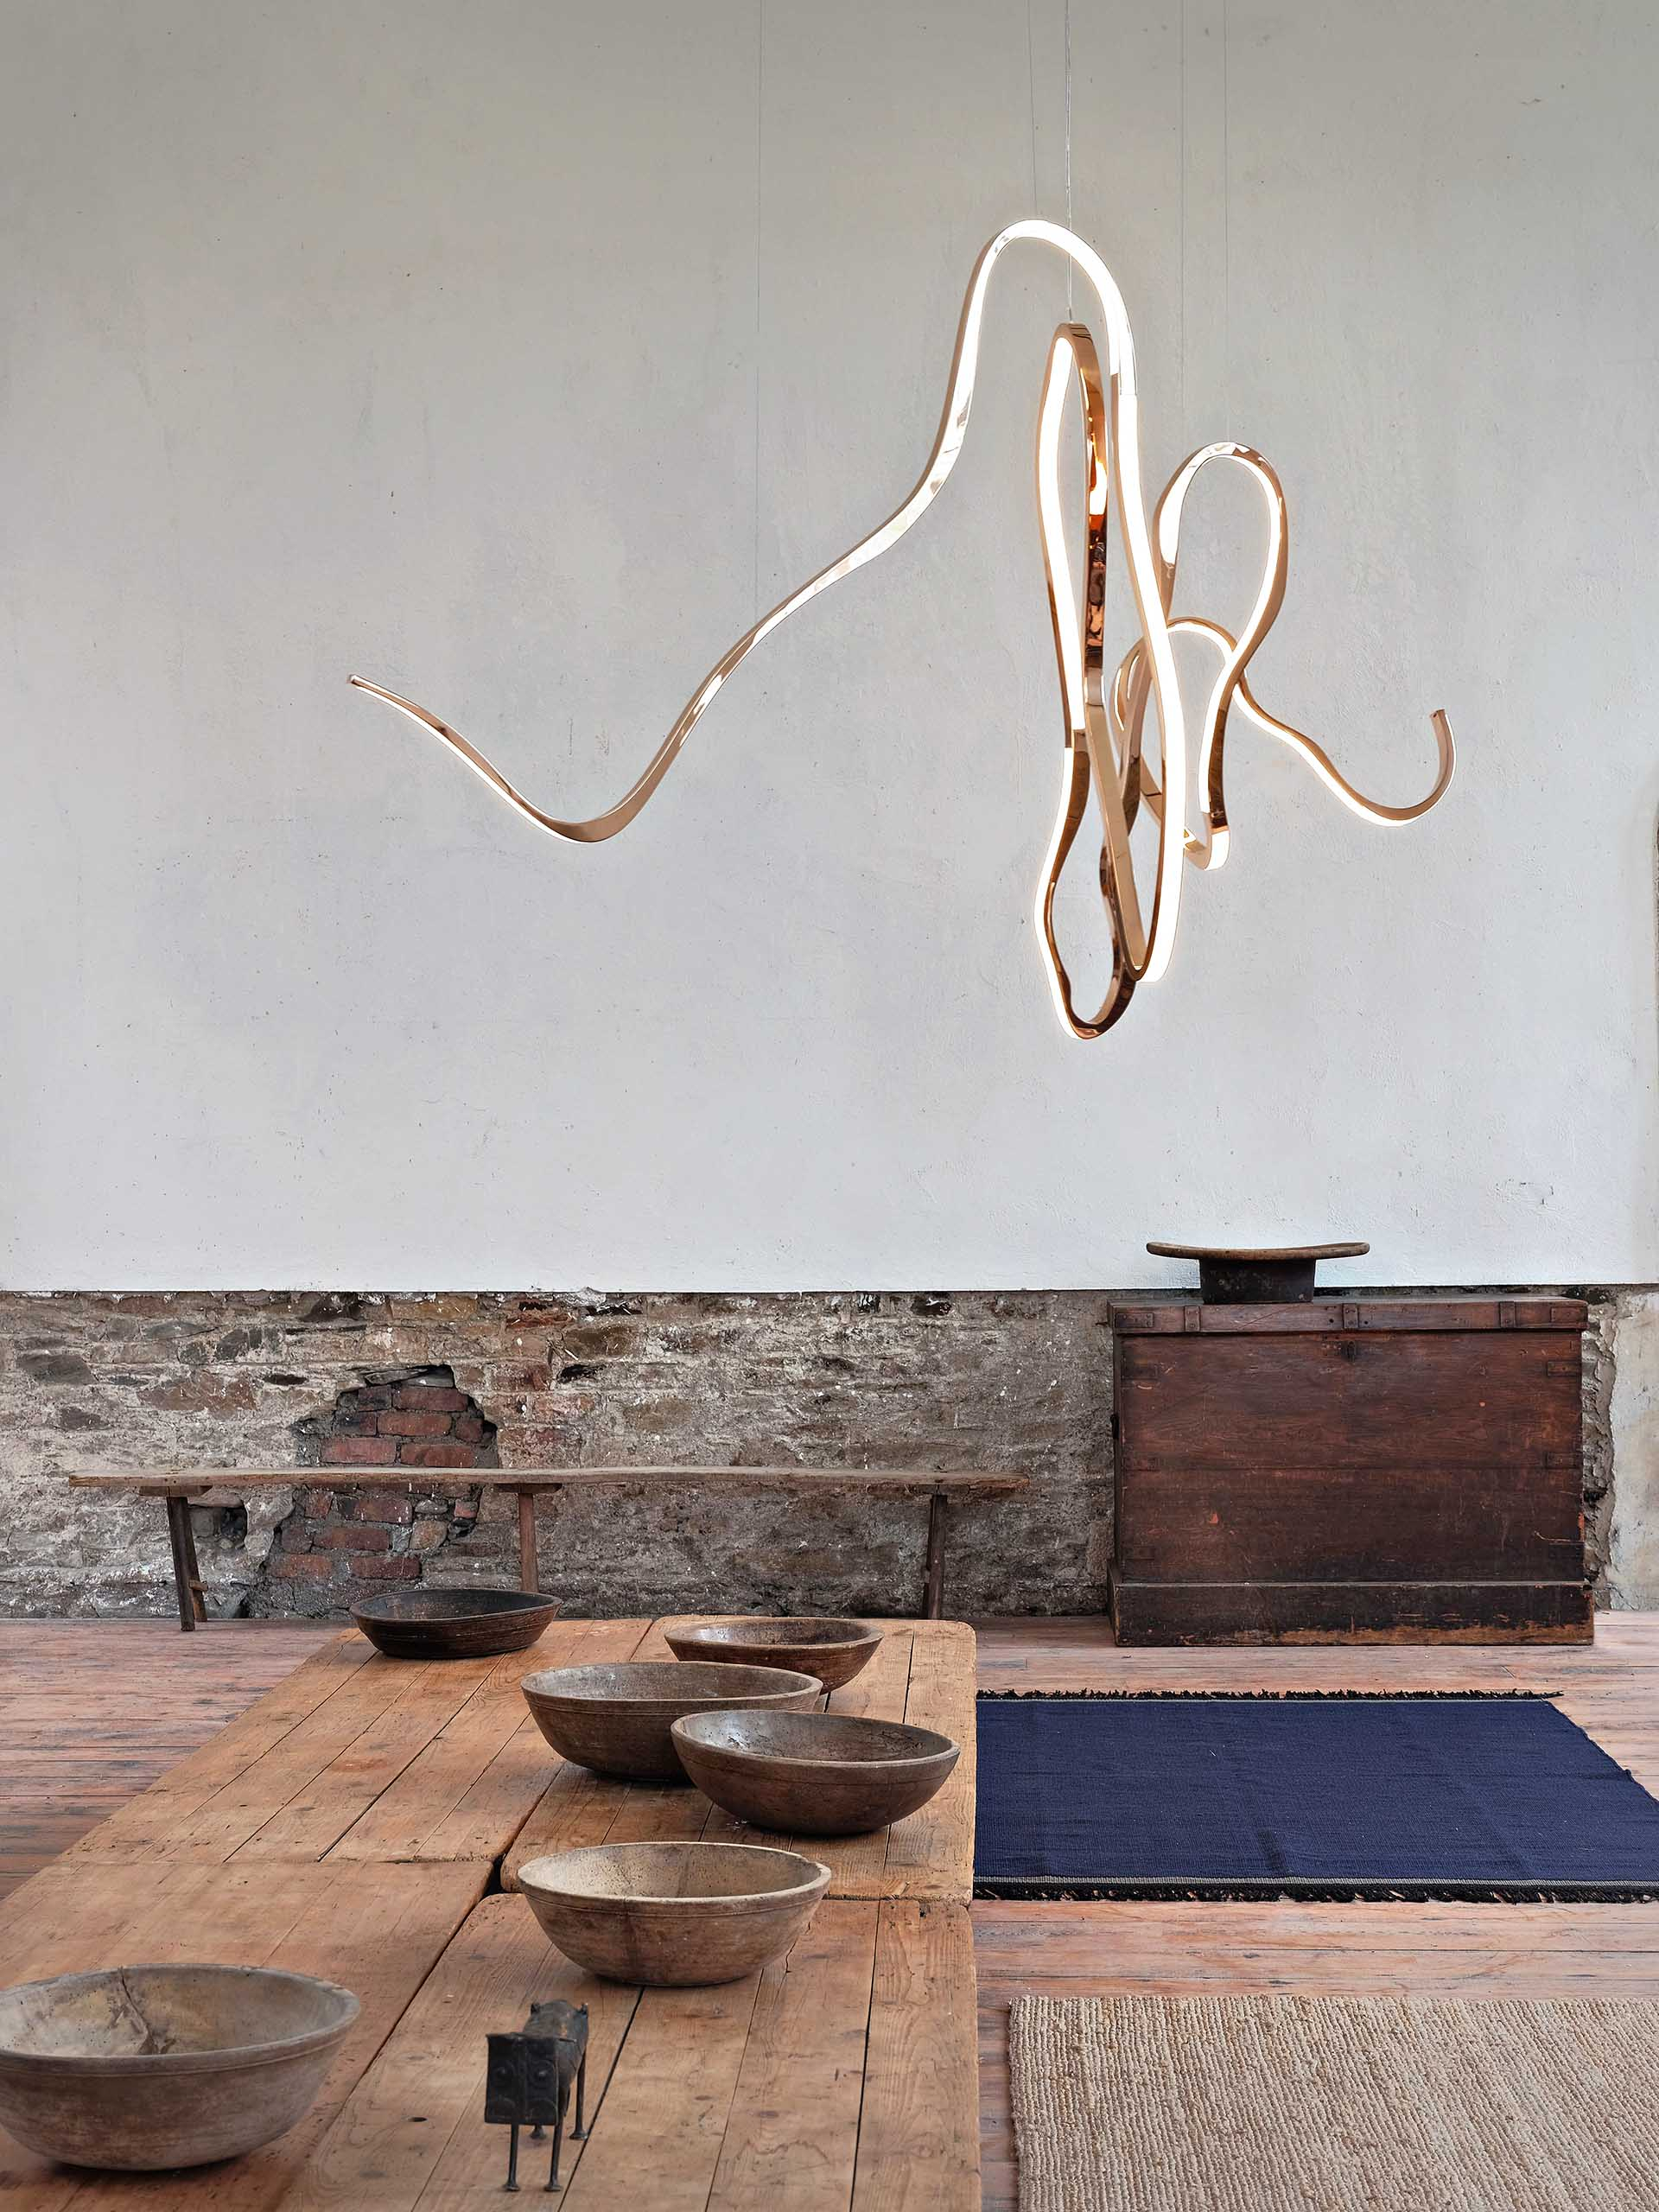 A modern sculptural light made from polished bronze, glass, and LEDs.